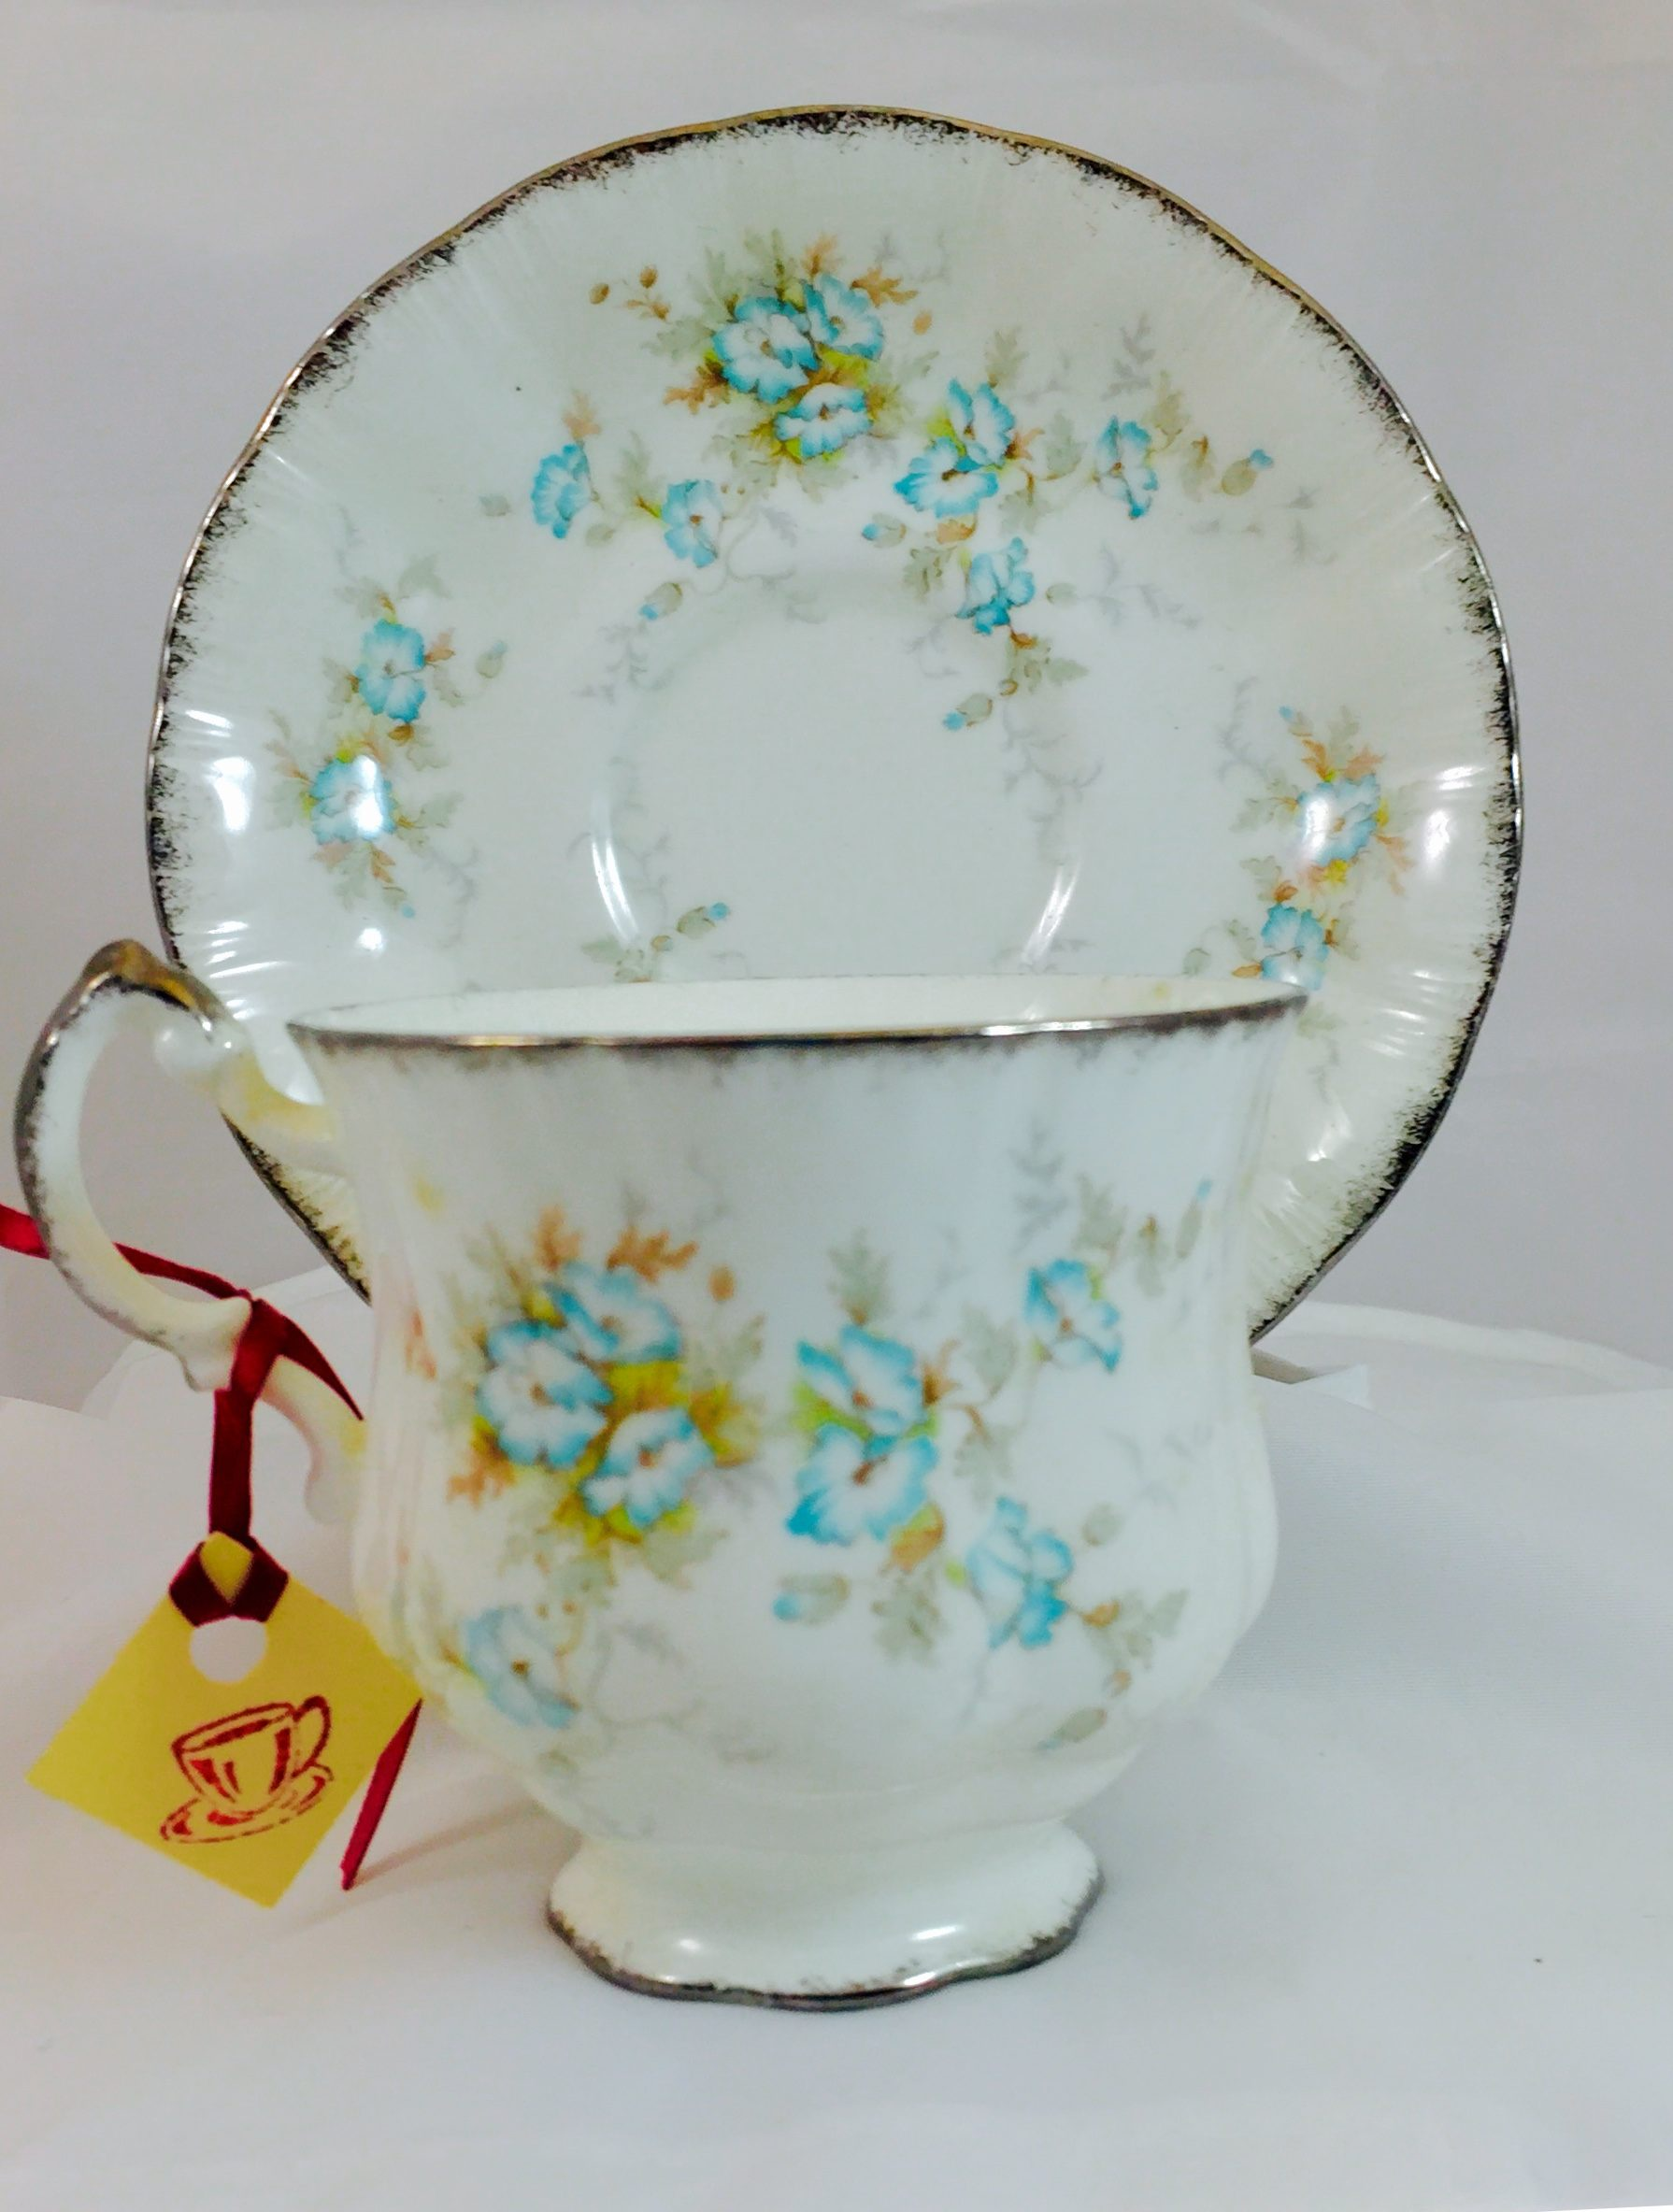 Baby Blue Buds teacup-small.jpg